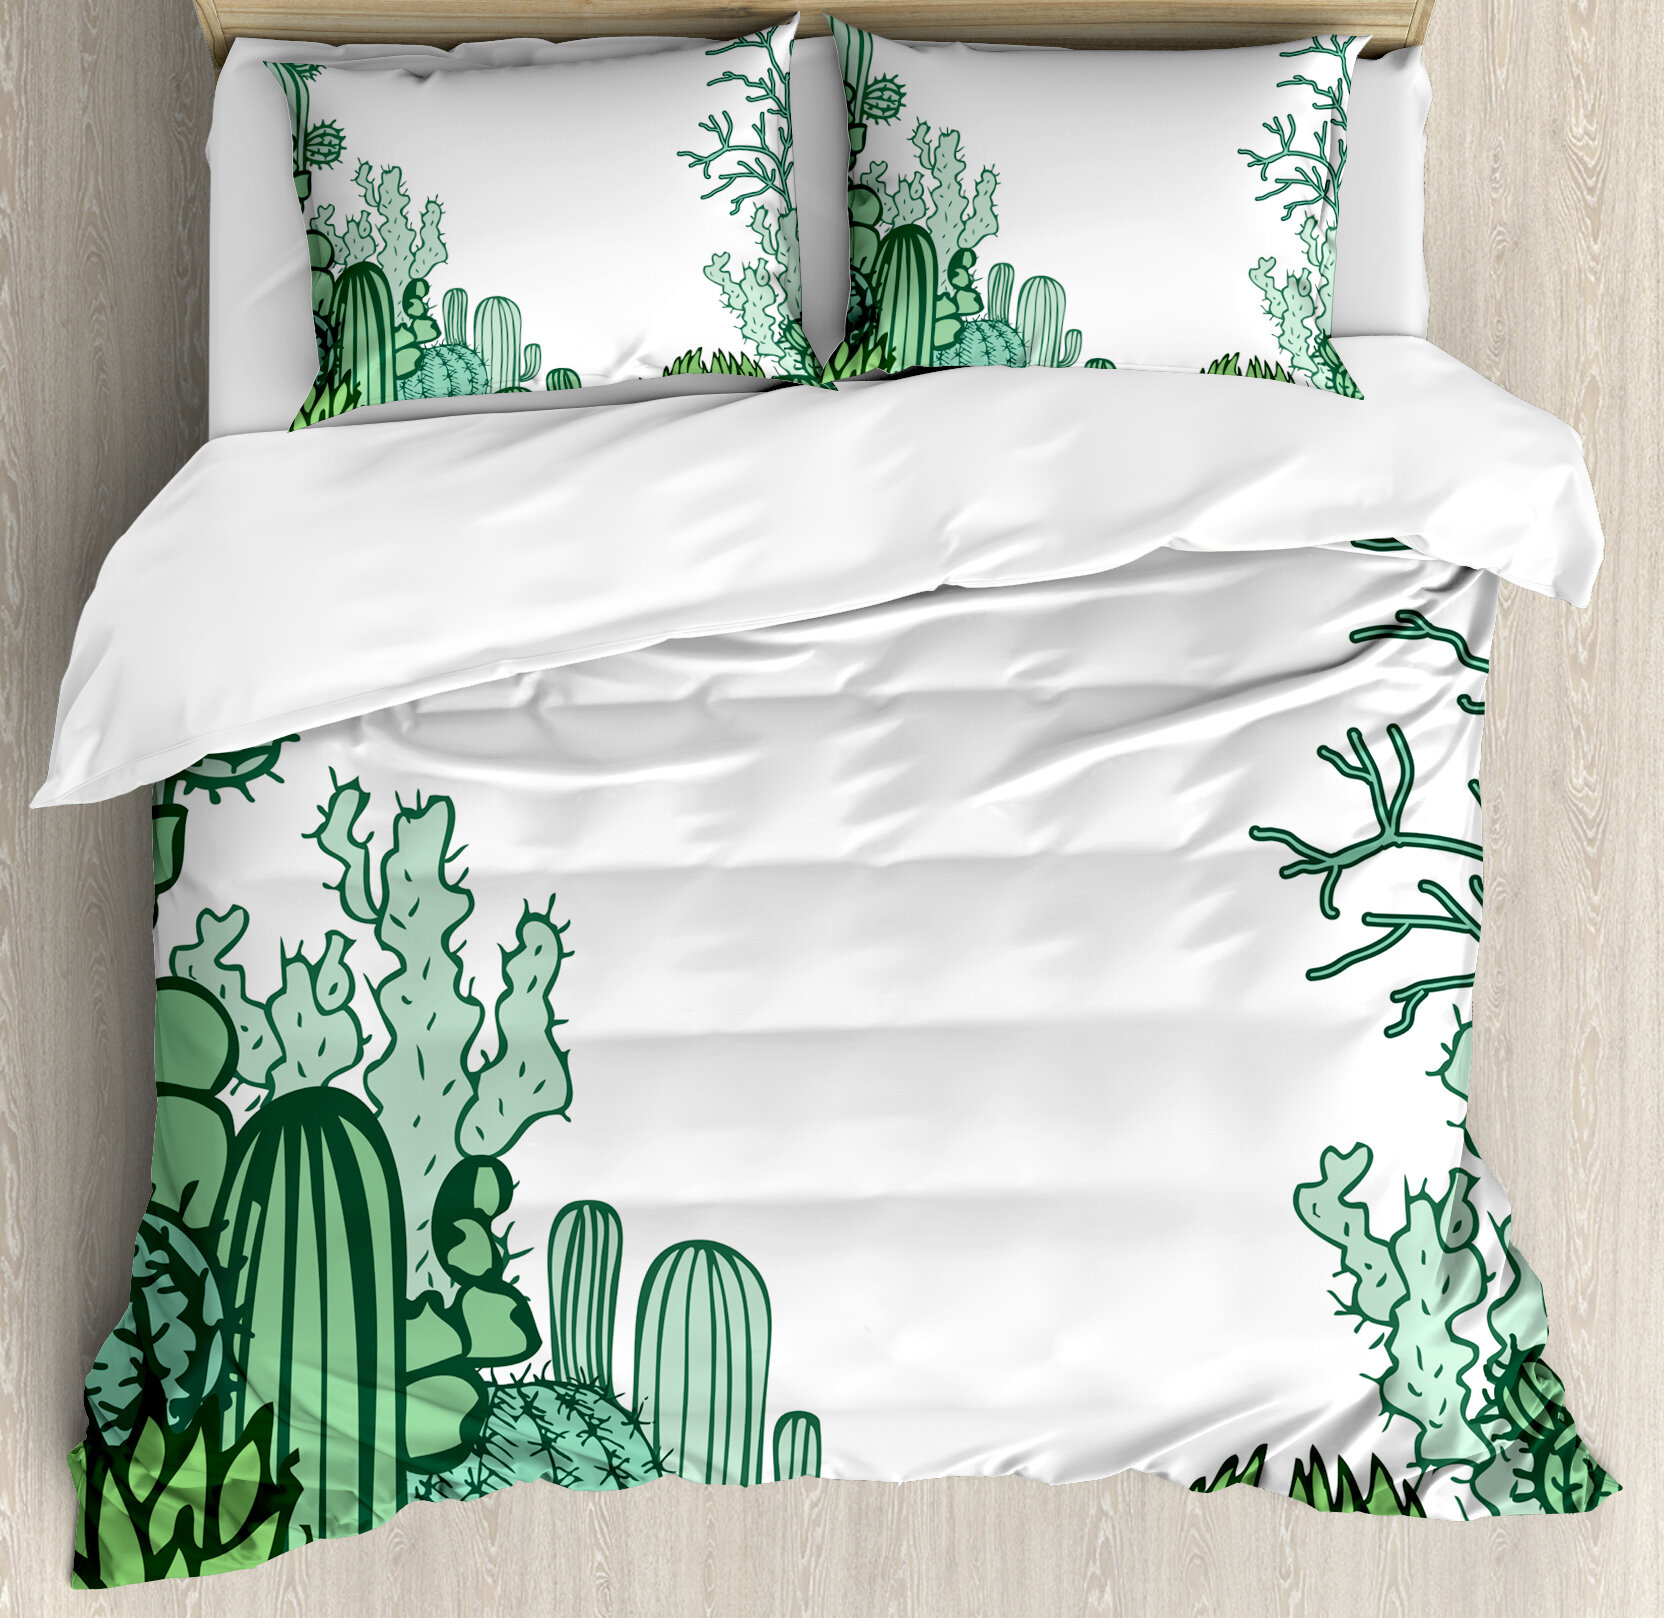 Ambesonne Arizona Desert Themed Doodle Cactus Staghorn Buckhorn Ocotillo Duvet Cover Set Wayfair